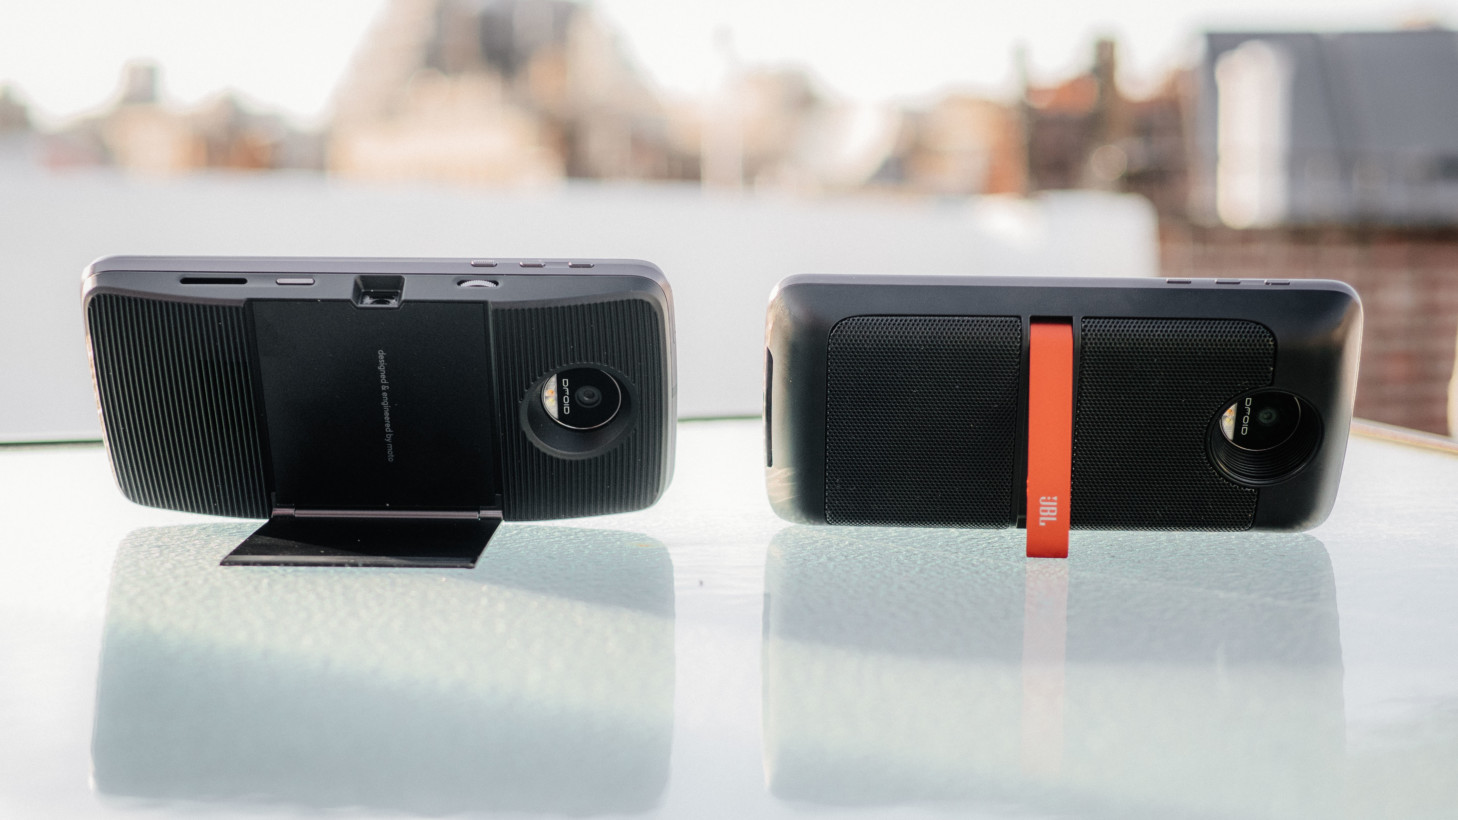 Left: Insta-share projector. Right: JBL SoundBoost speakers